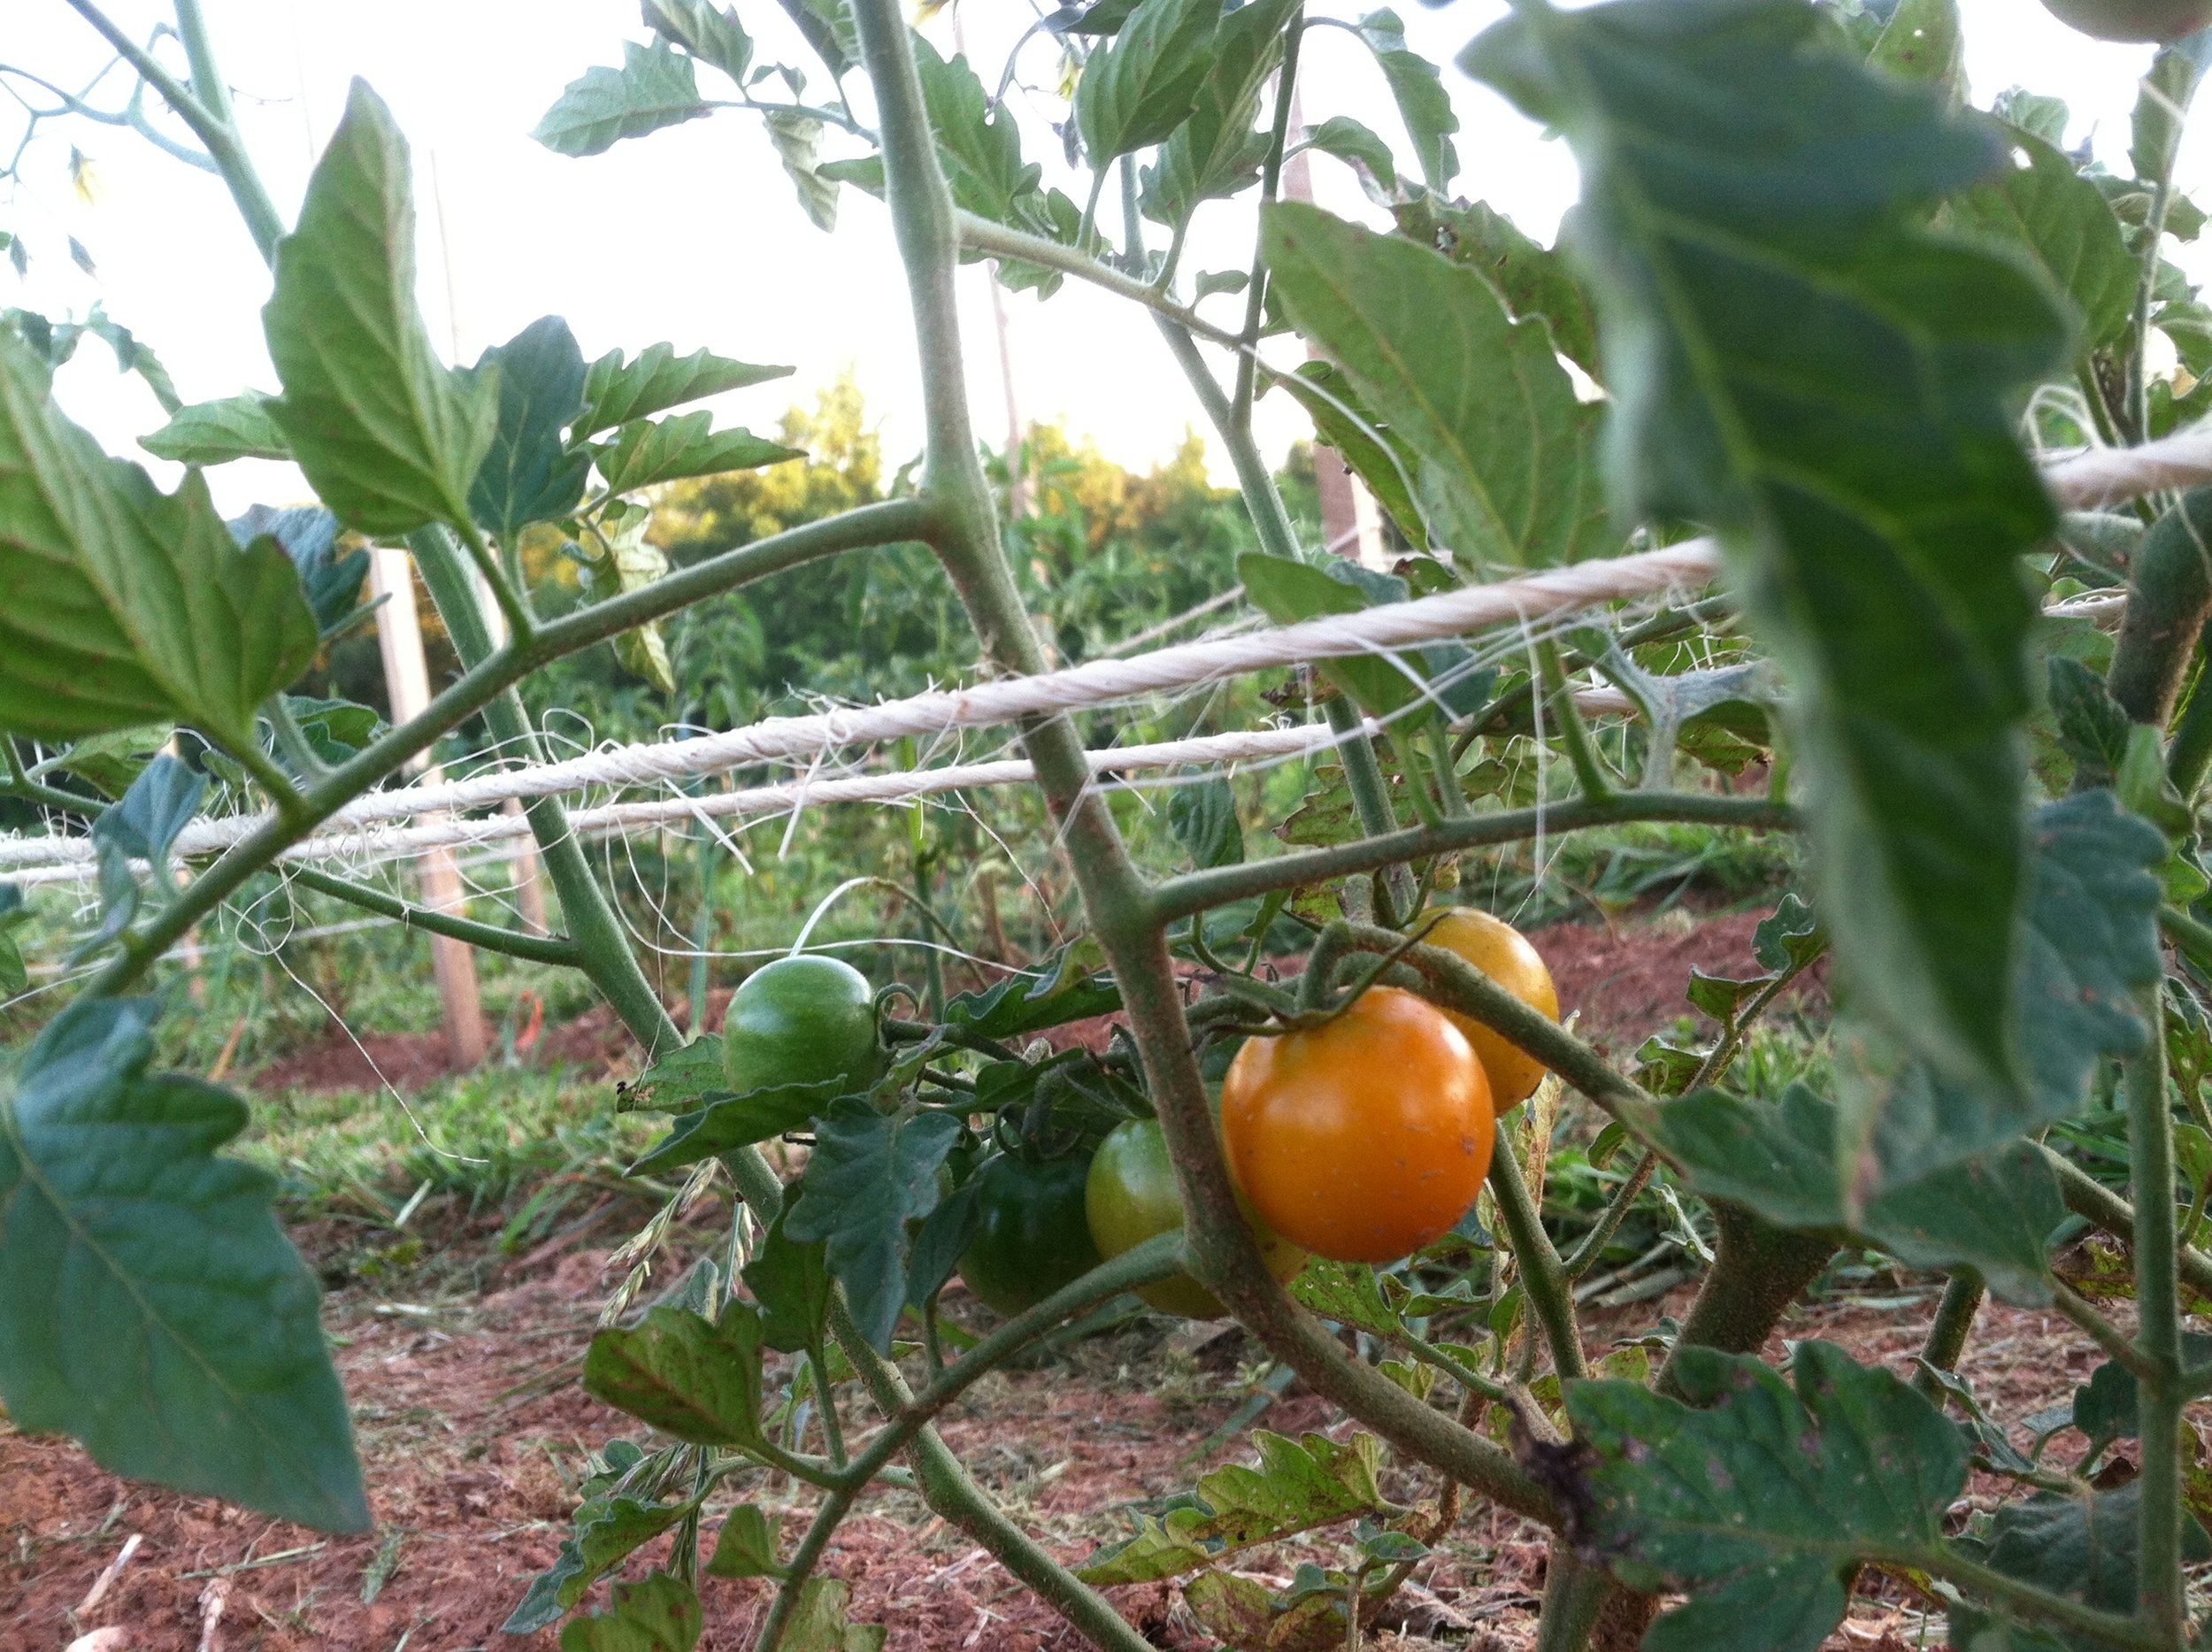 The 35 other tomato varieties aren't quite ready, but these cherries are starting to come on.